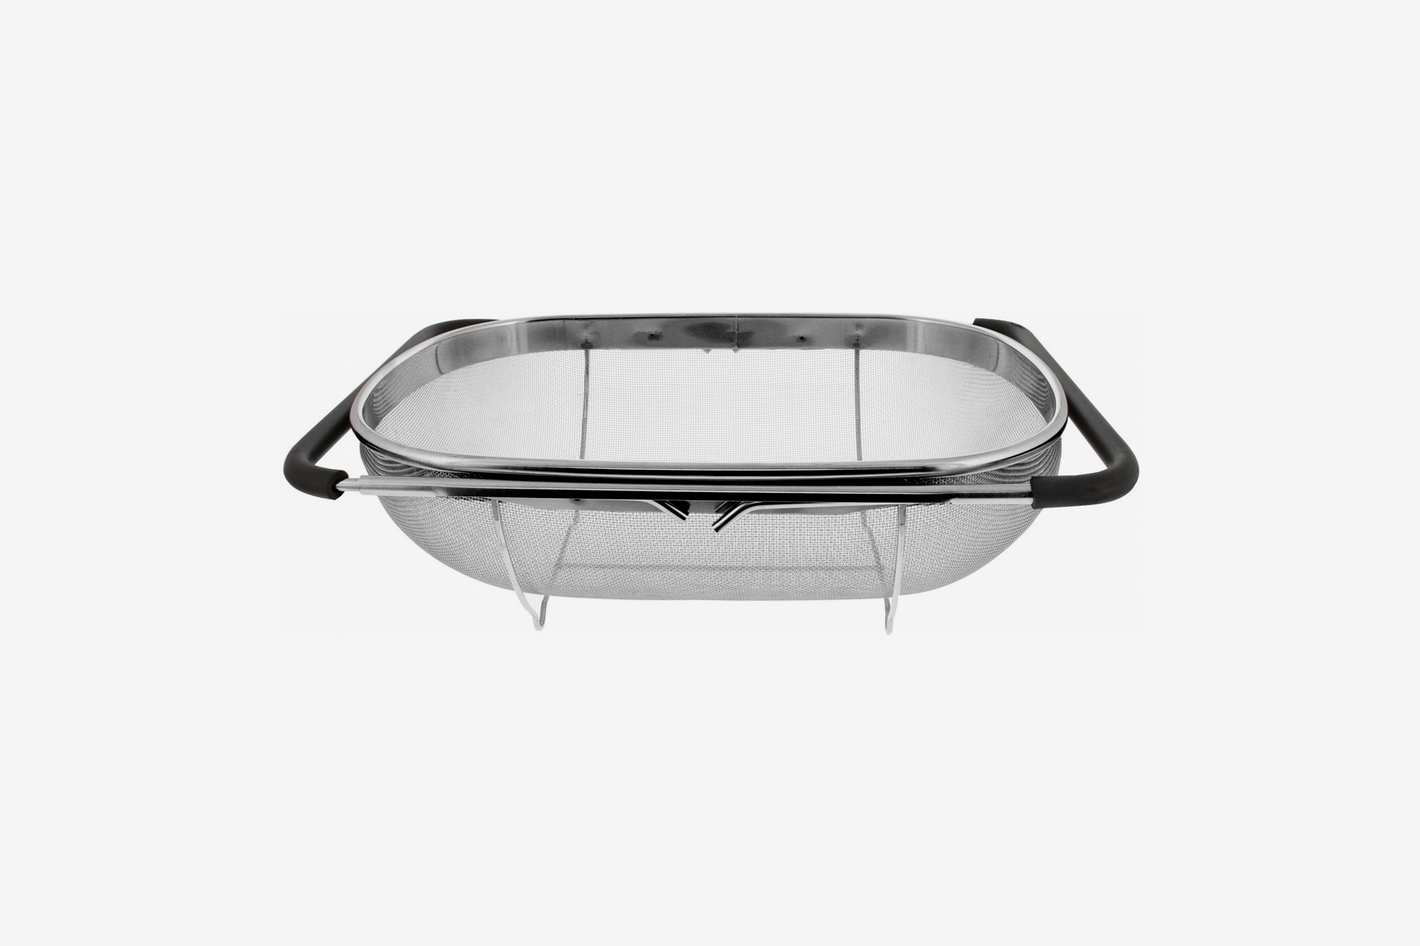 U.S. Kitchen Supply Over The Sink Stainless Steel Colander with Expandable Rubber Grip Handles